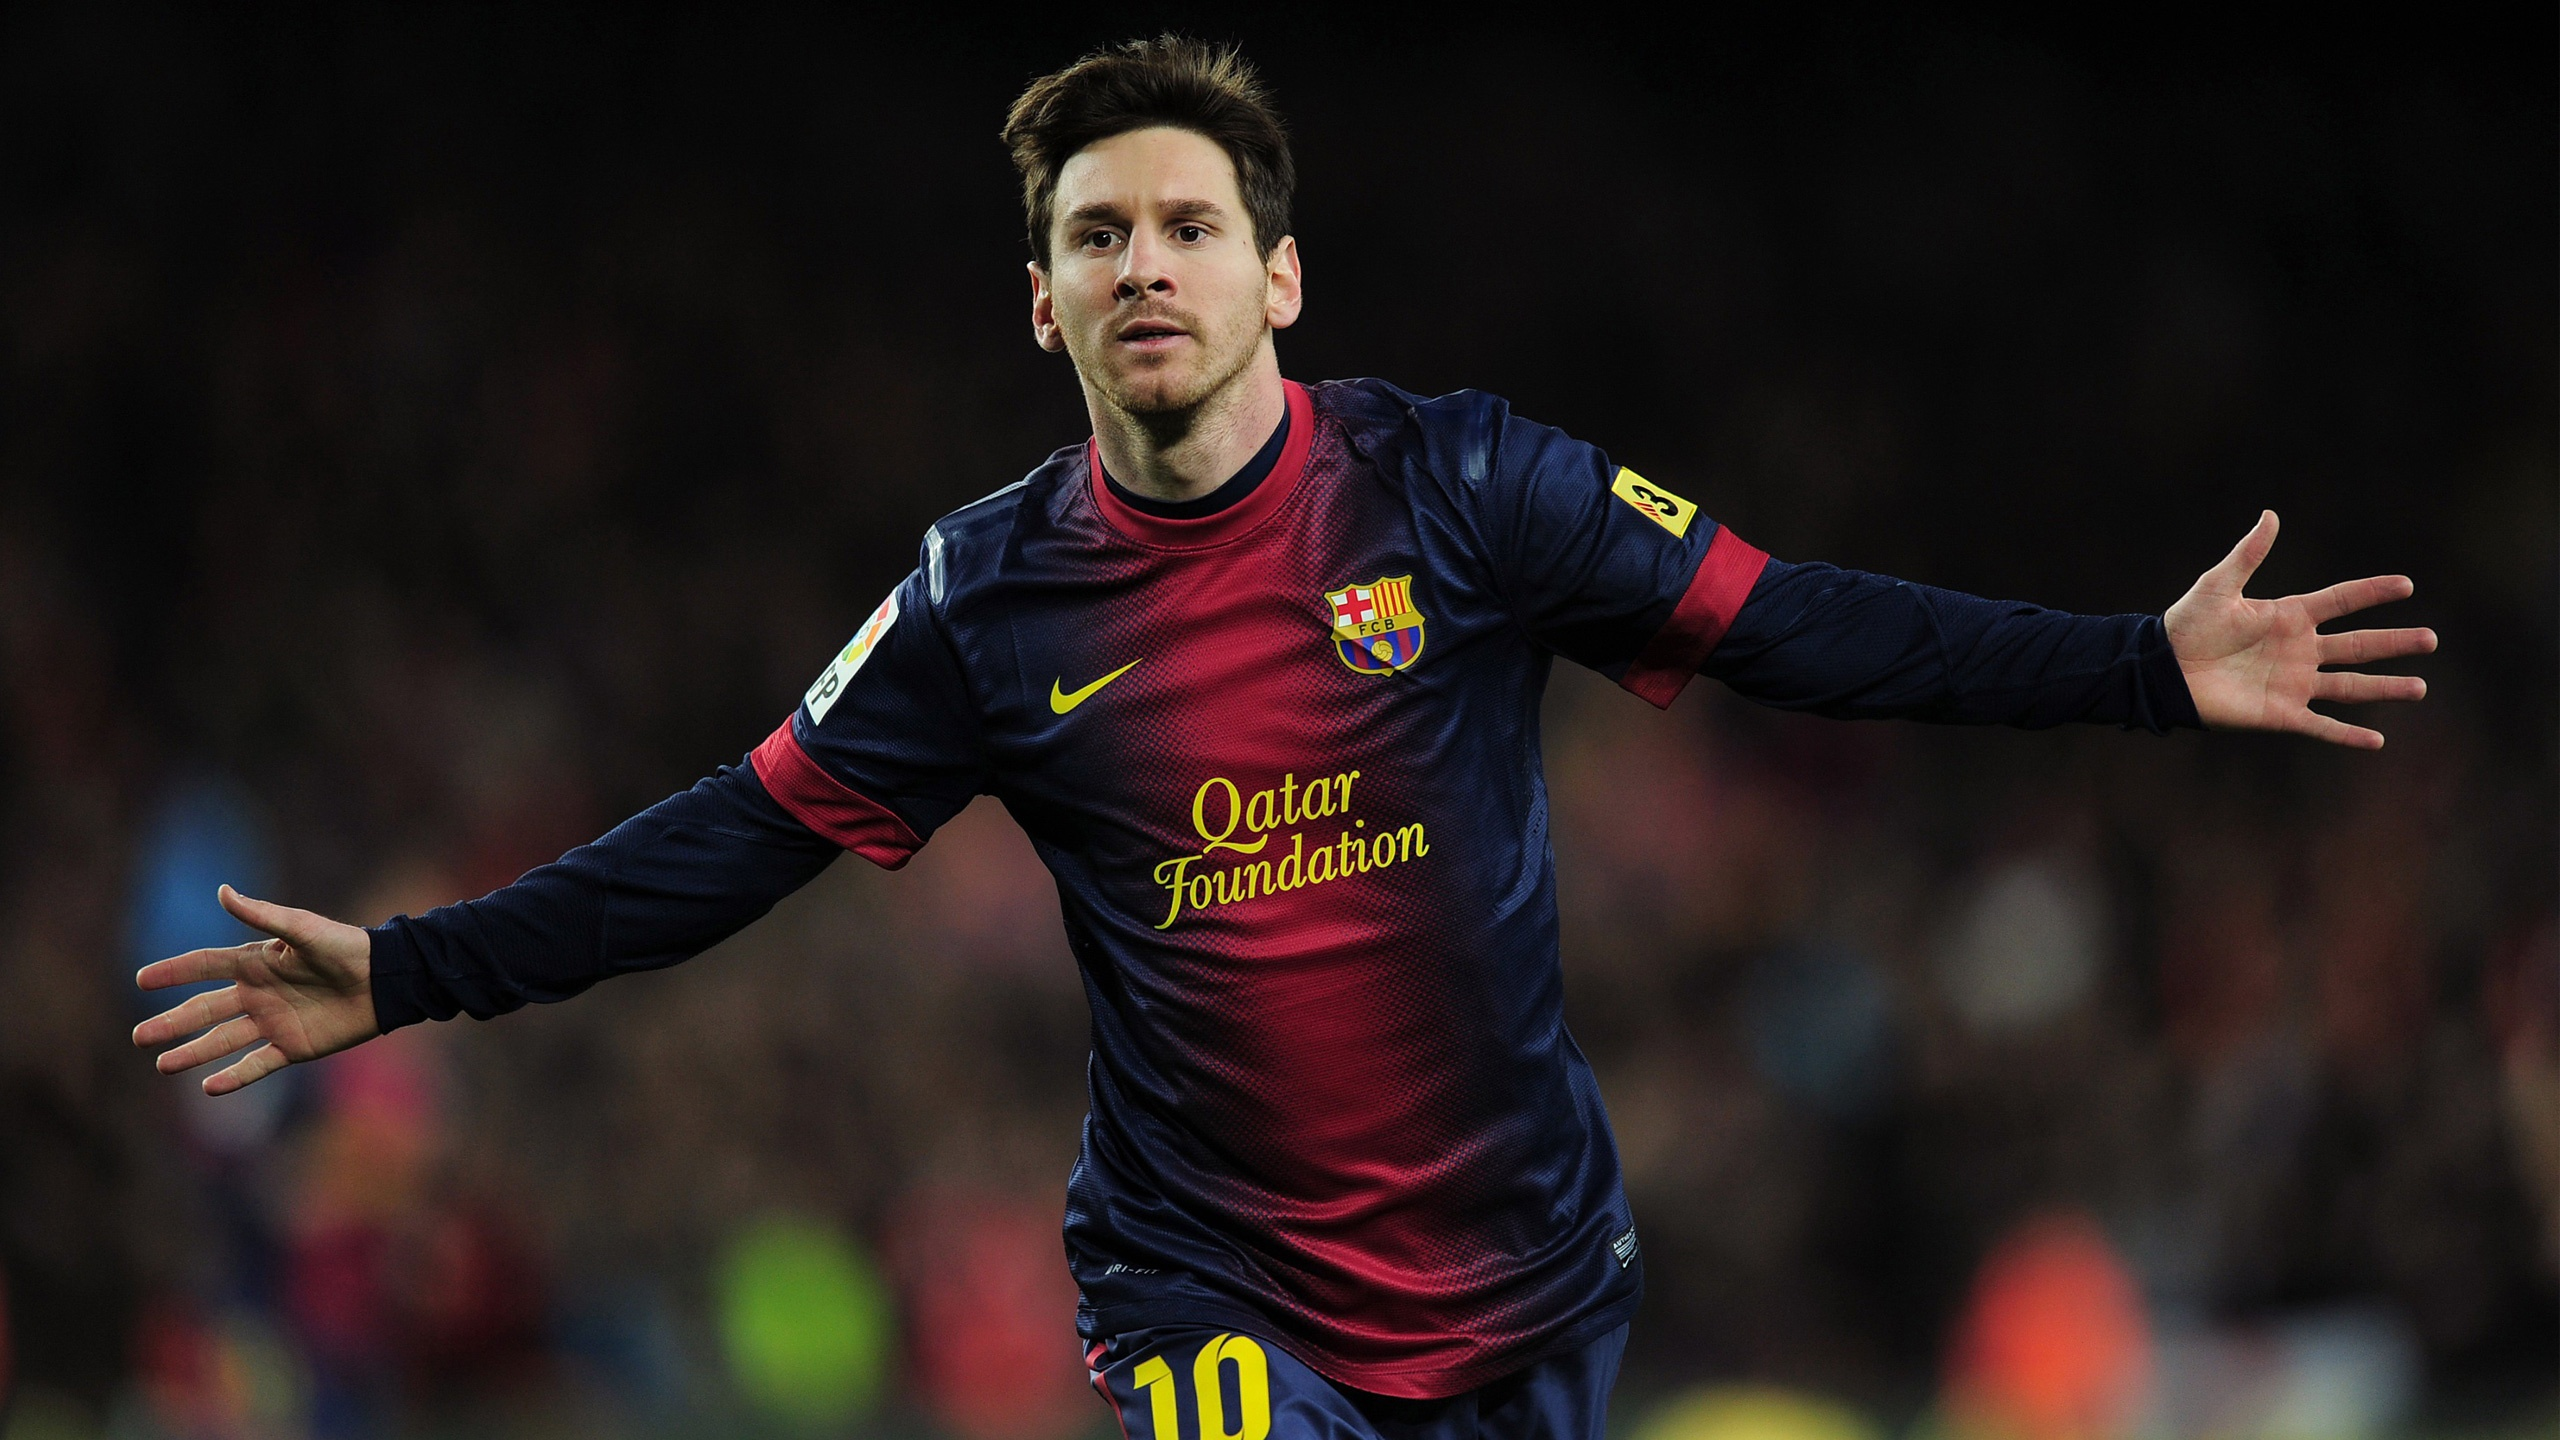 Messi Wallpapers In Jpg Format For Free Download